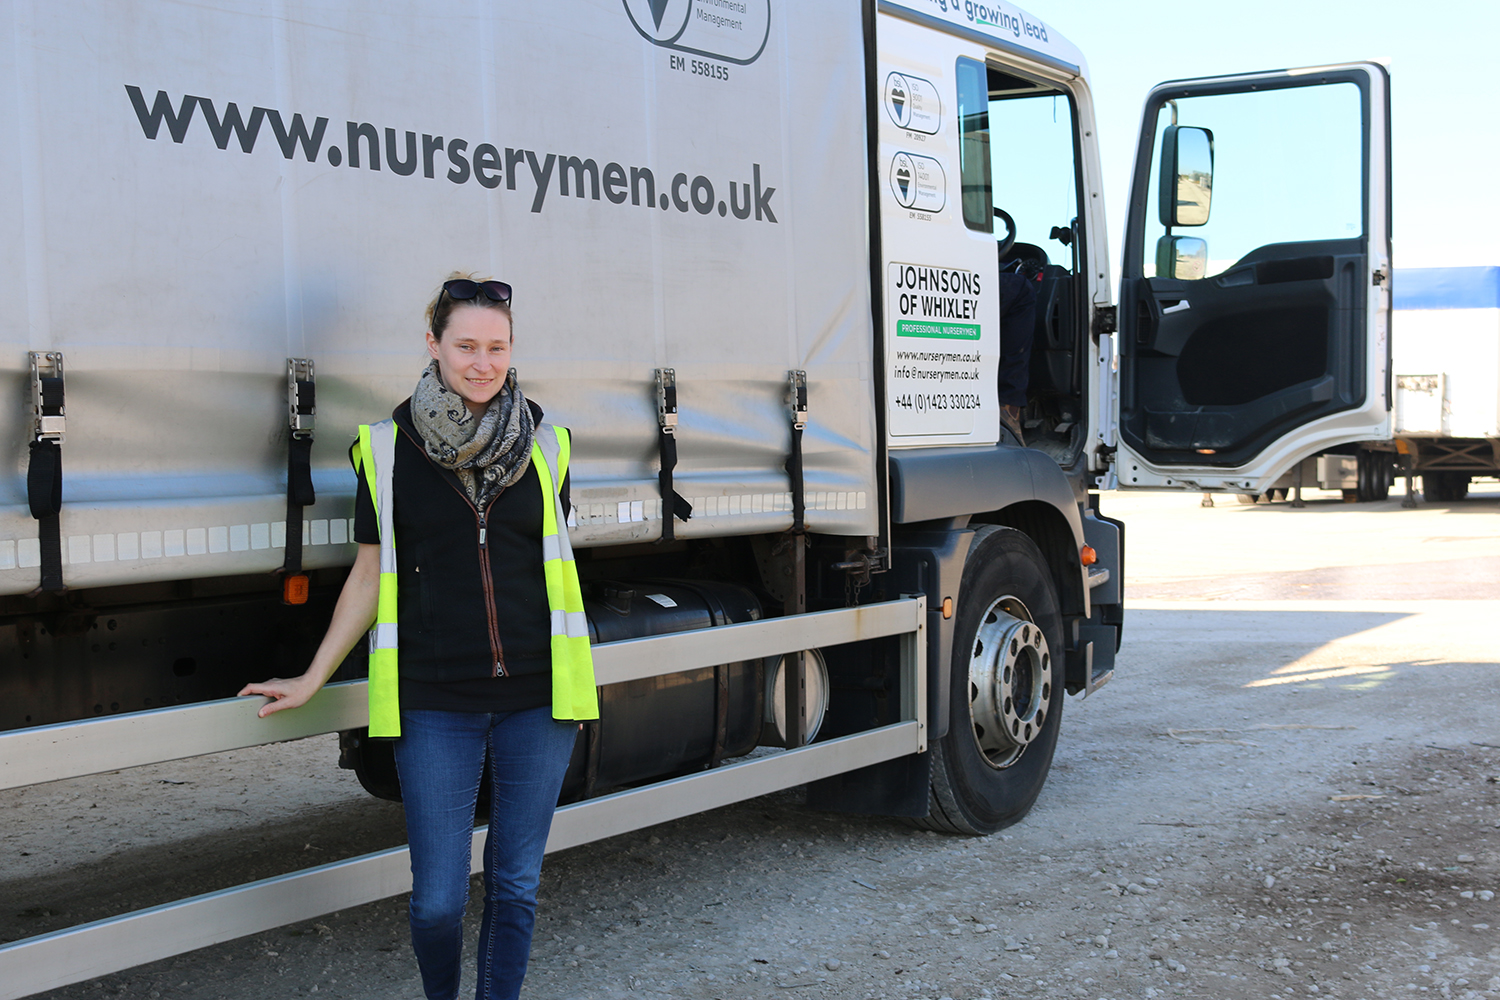 Meet our new Transport and Logistics Manager, Hannah Smith